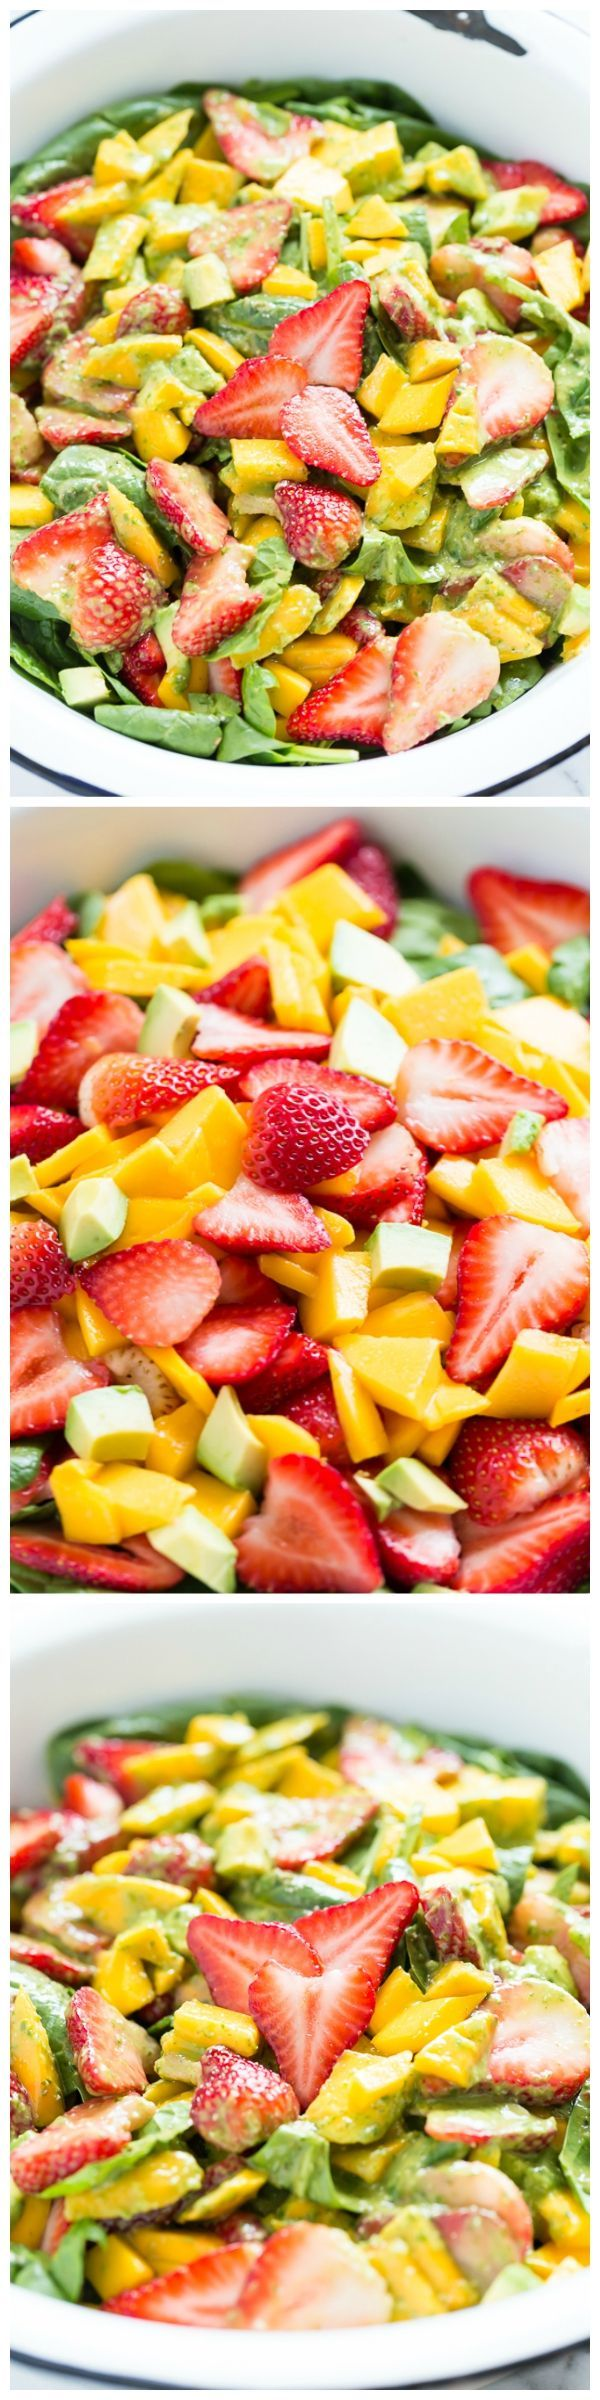 Strawberry Mango Spinach Salad with Creamy Basil Dressing - a fresh ...